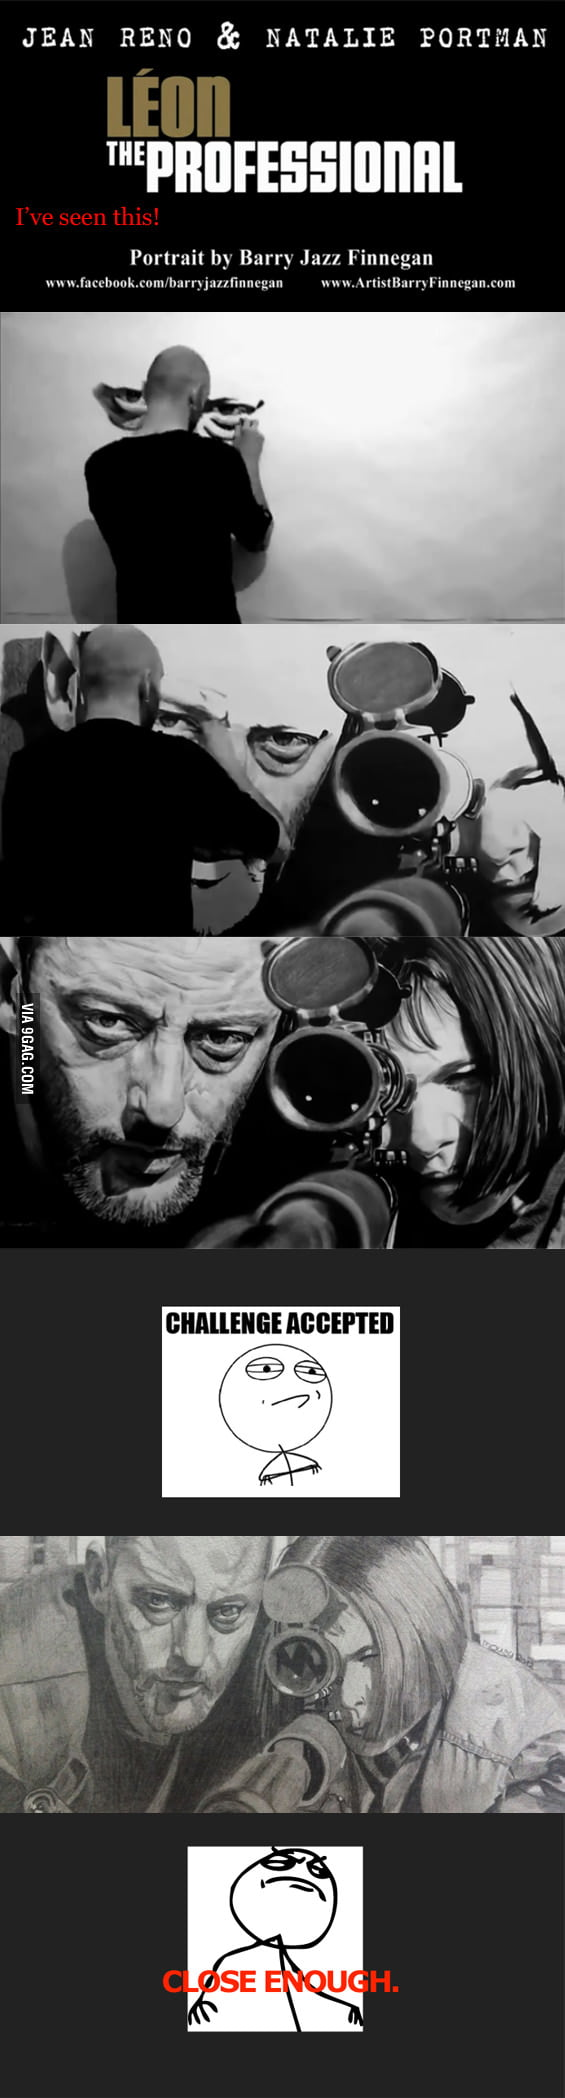 Leon Challenge Accpeted